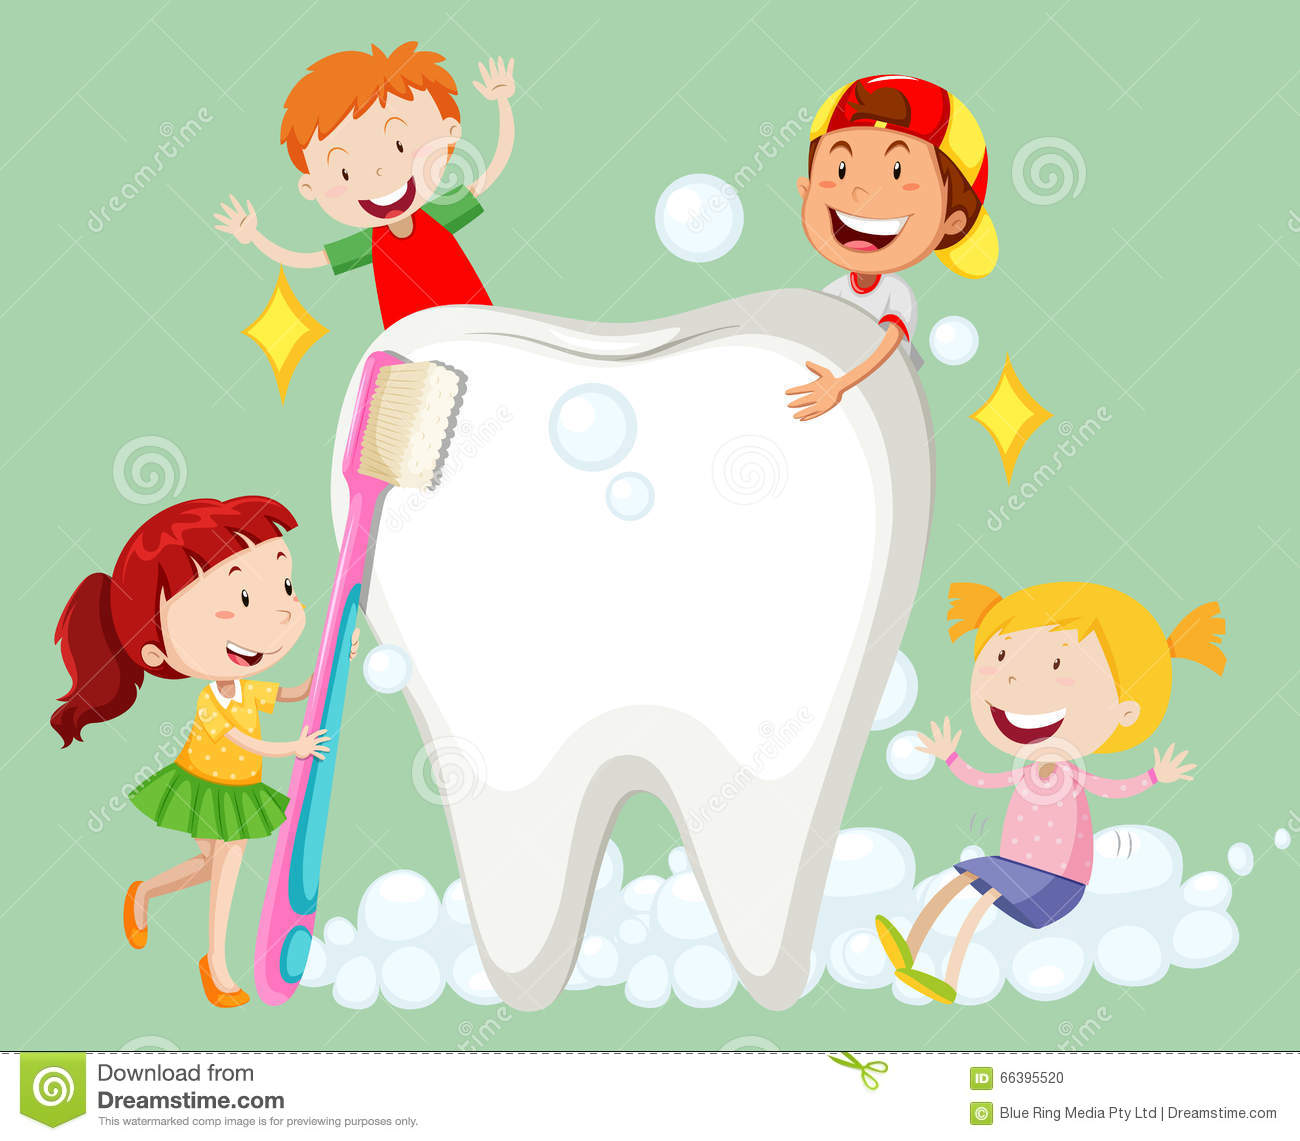 Children Cleaning Tooth With Toothbrush Stock Vector ...